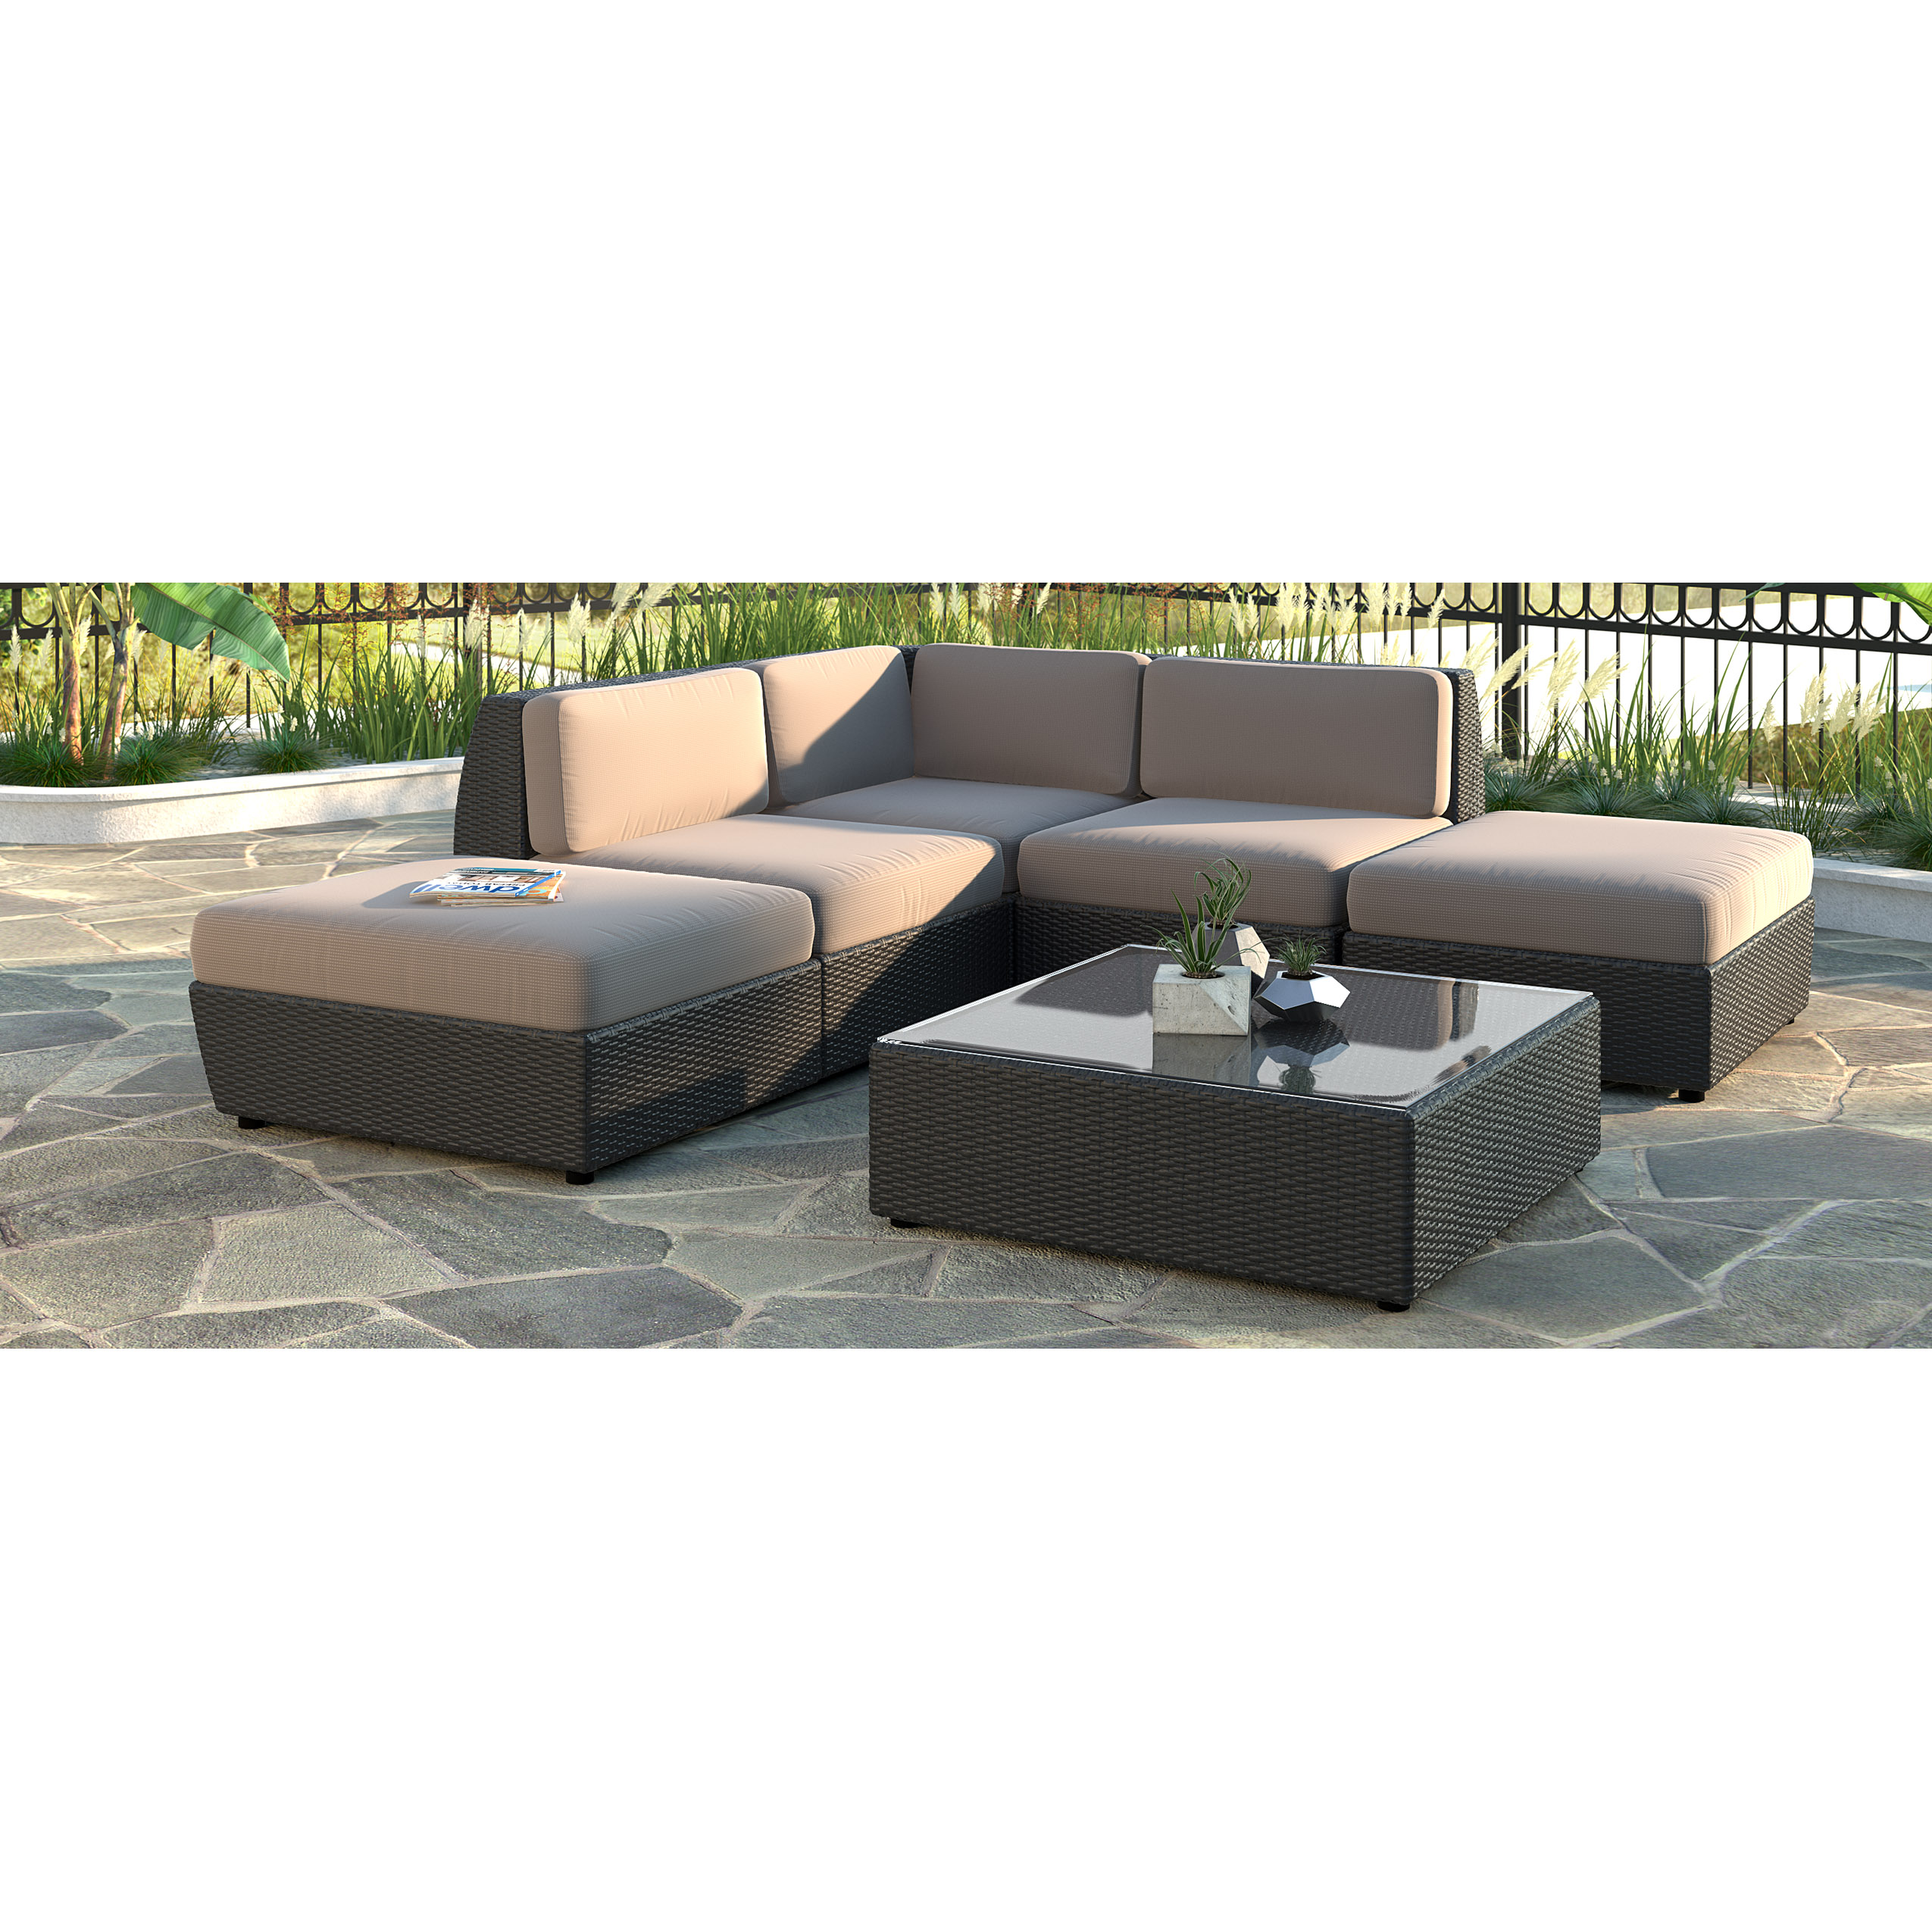 Corliving Seattle Curved 6 Pc Chaise Lounge Sectional